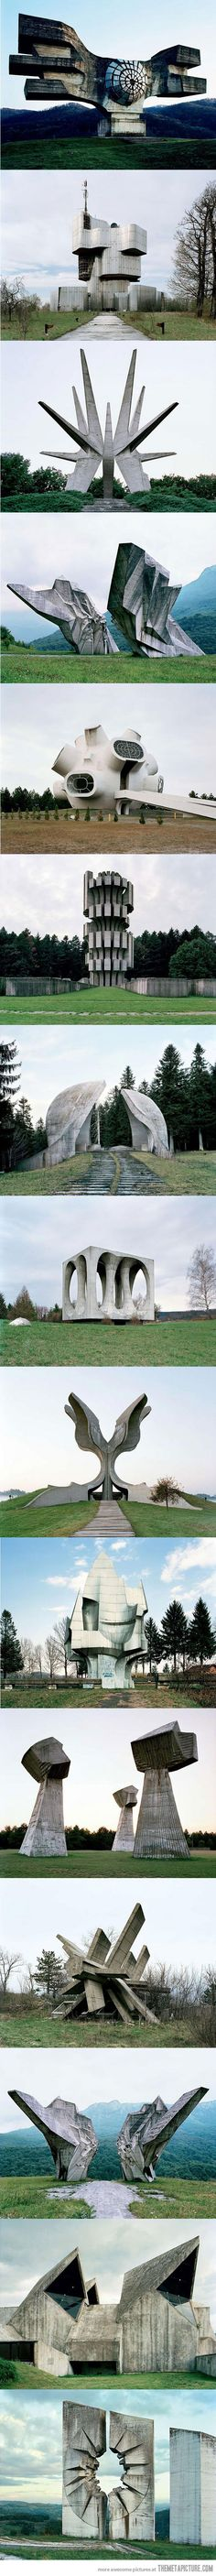 Cool futuristic buildings and monuments. Where are they?